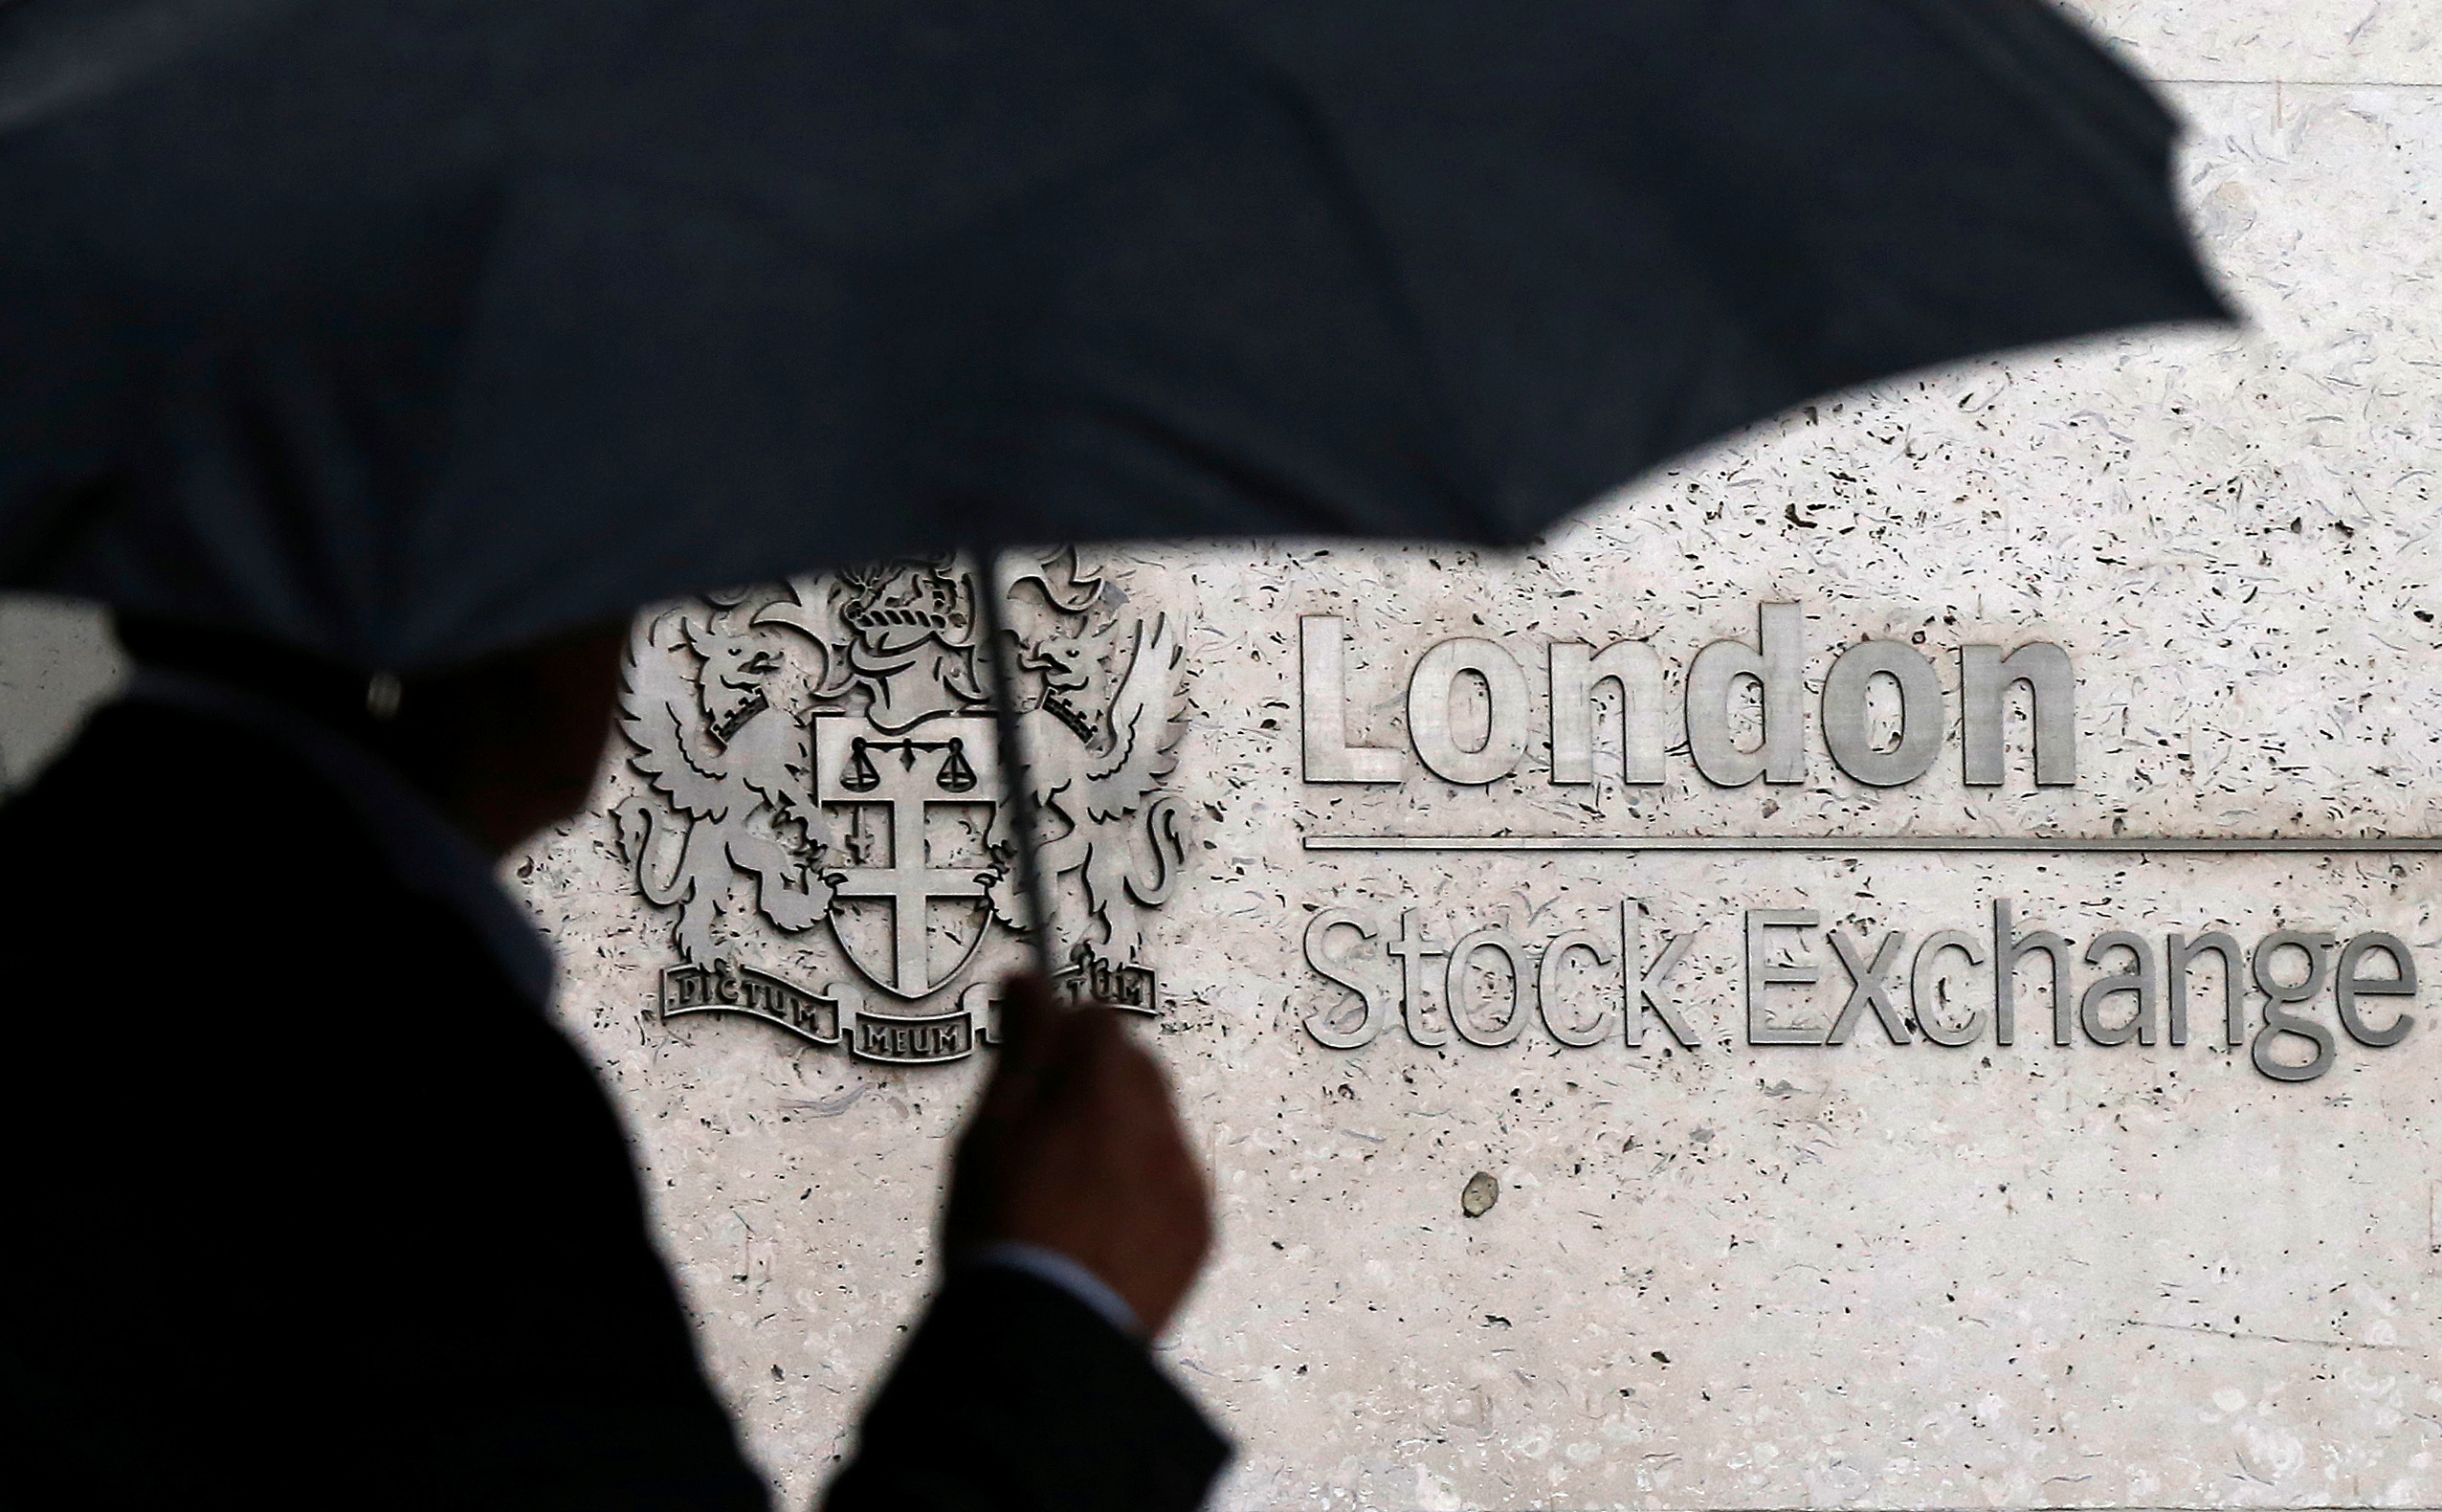 A man shelters under an umbrella as he walks past the London Stock Exchange in London, Britain, August 24, 2015. REUTERS/Suzanne Plunkett/File Photo